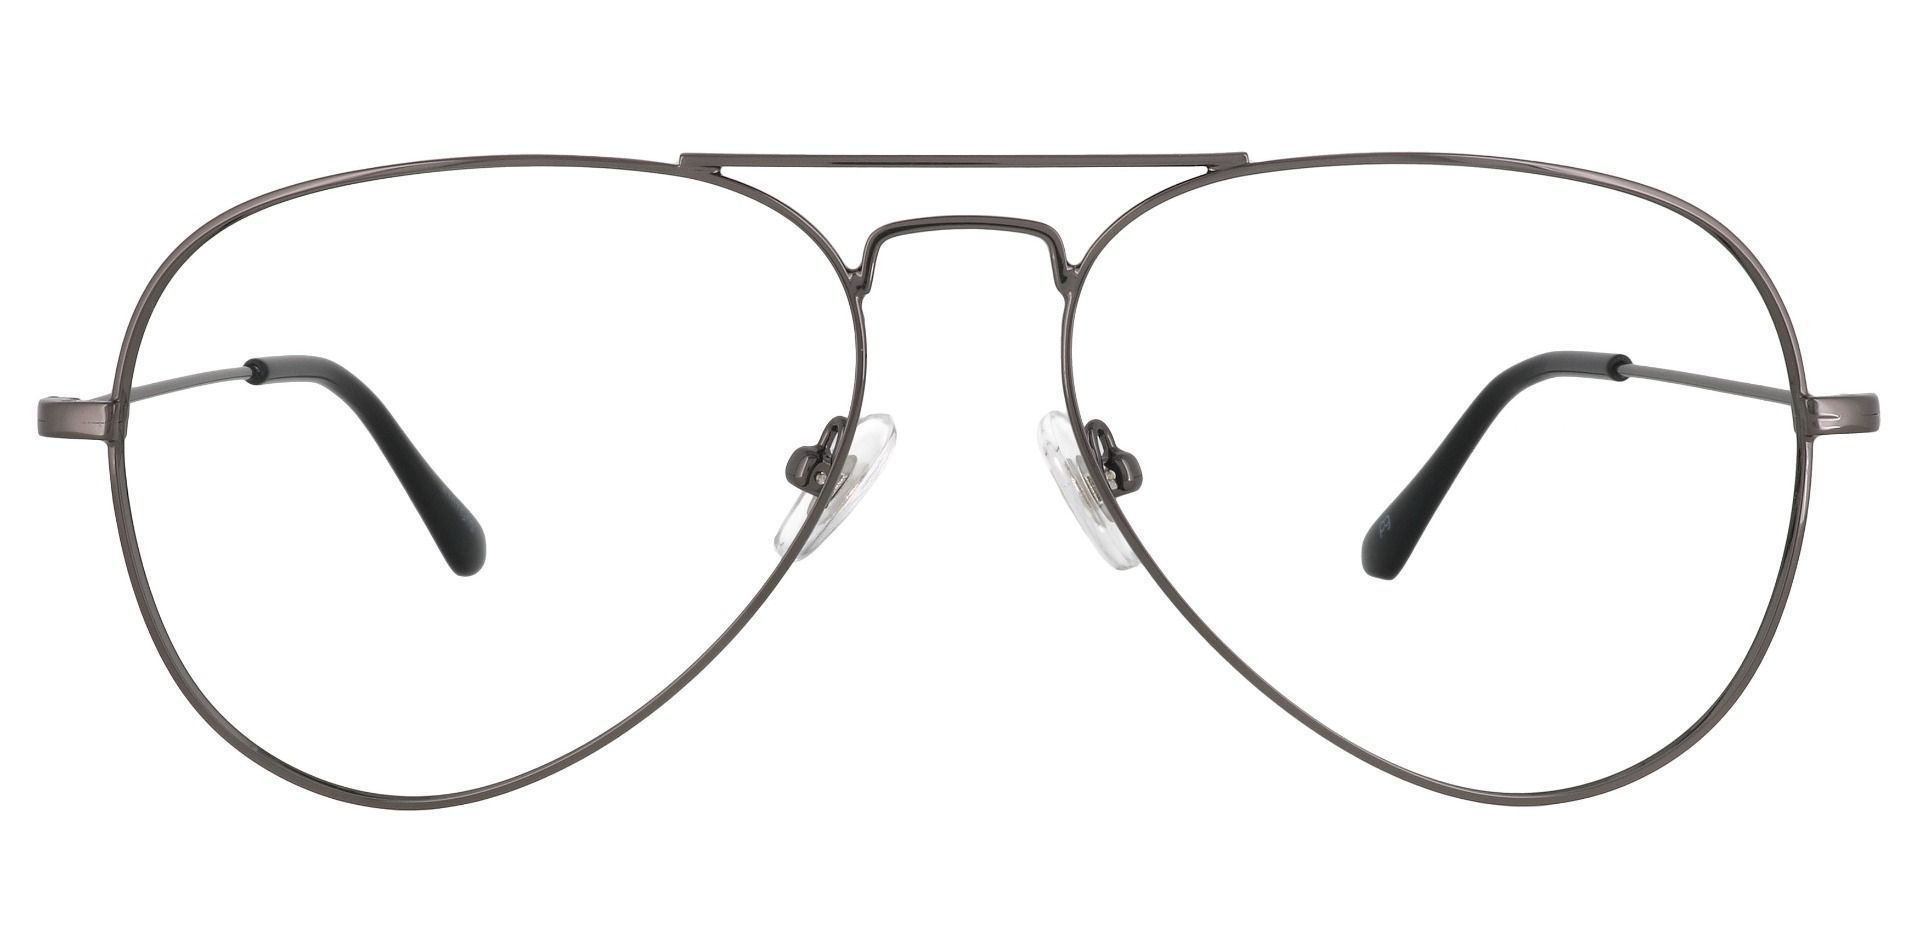 Memphis Aviator Blue Light Blocking Glasses - Gray